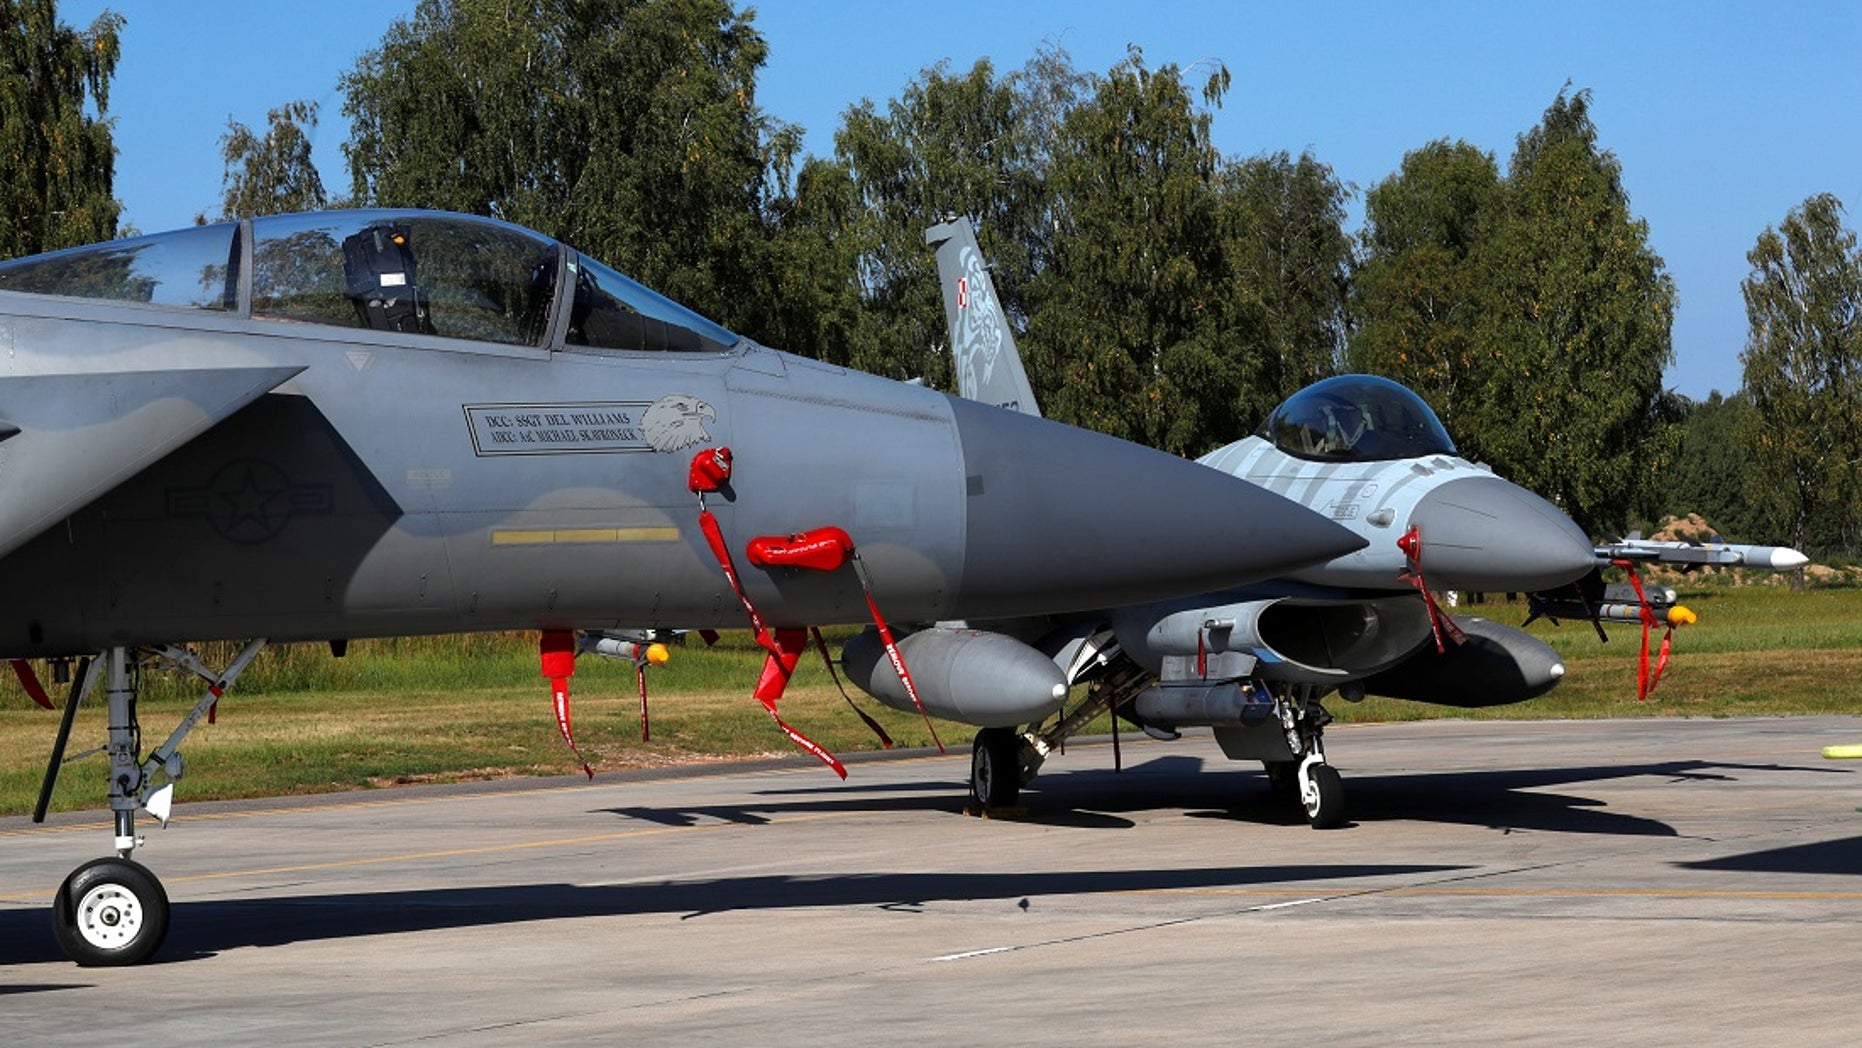 U.S. Air Force F-15C Eagle fighter and Polish Air Force F-16 fighter are seen during a NATO Baltic air policing mission in Lithuania.